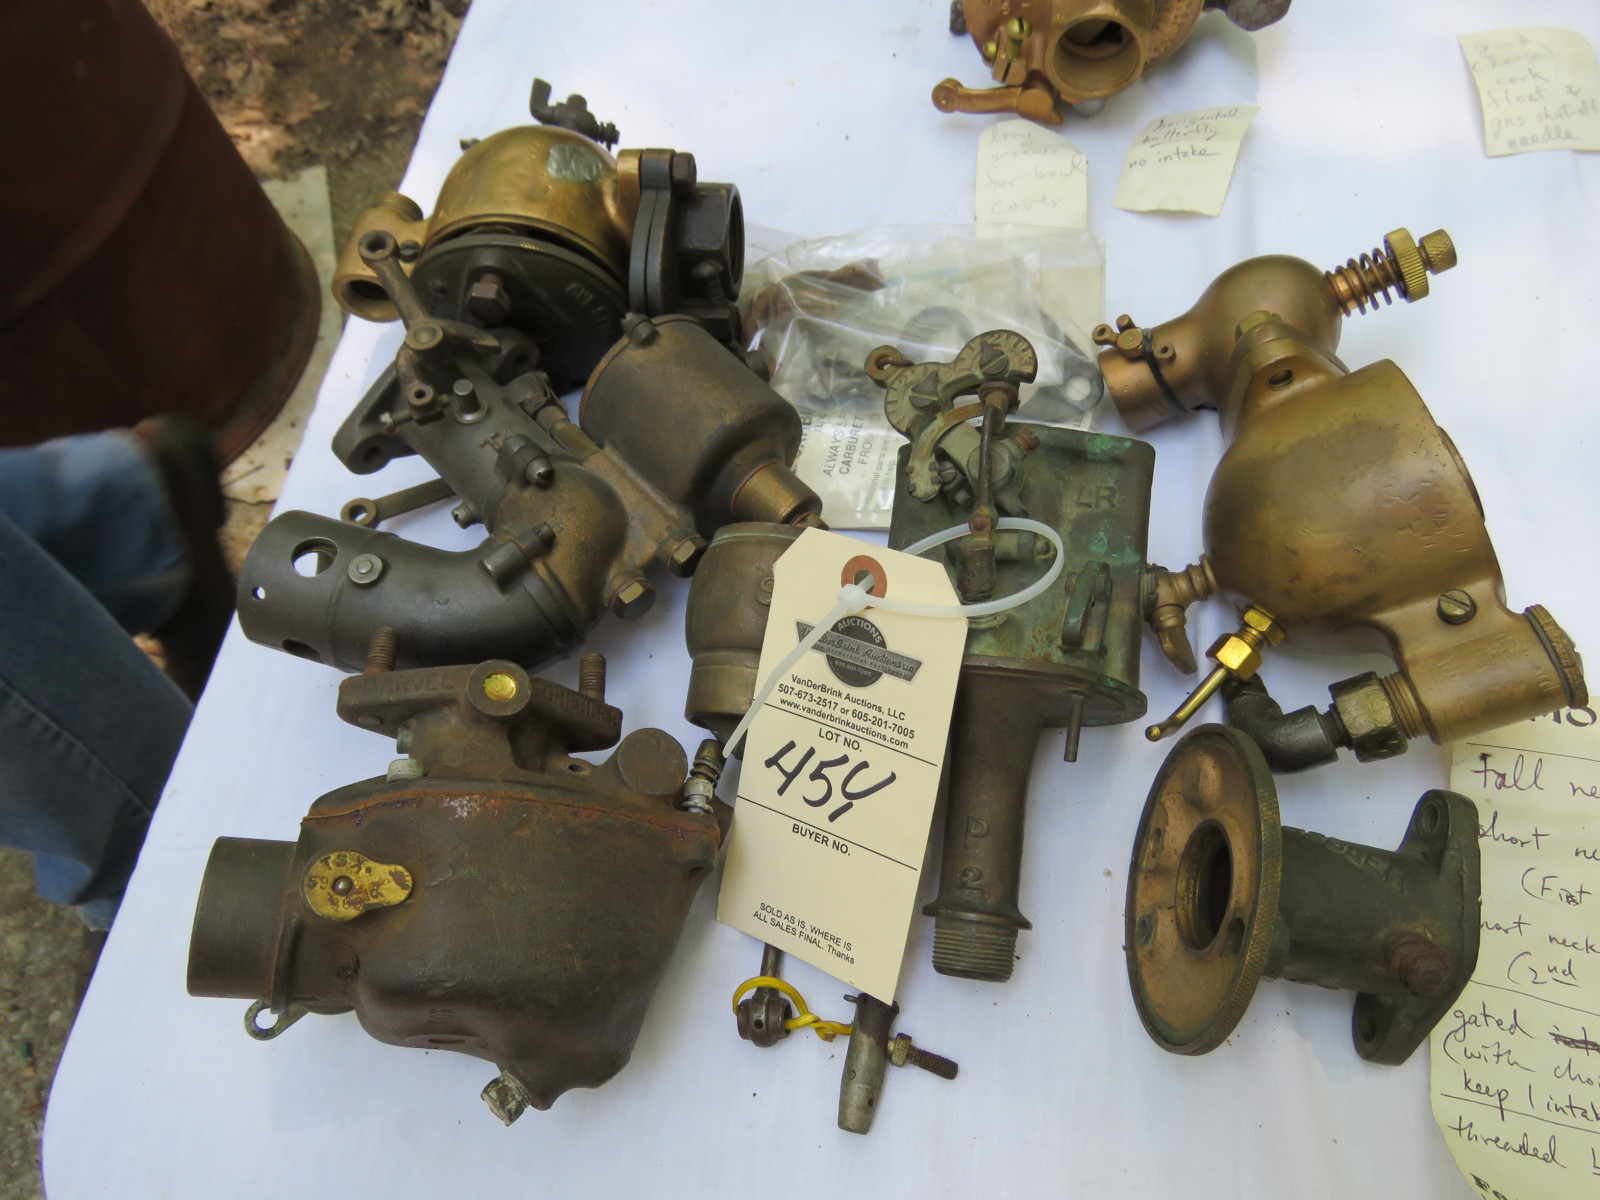 Schebler Carburetor Parts Grouping - Image 1